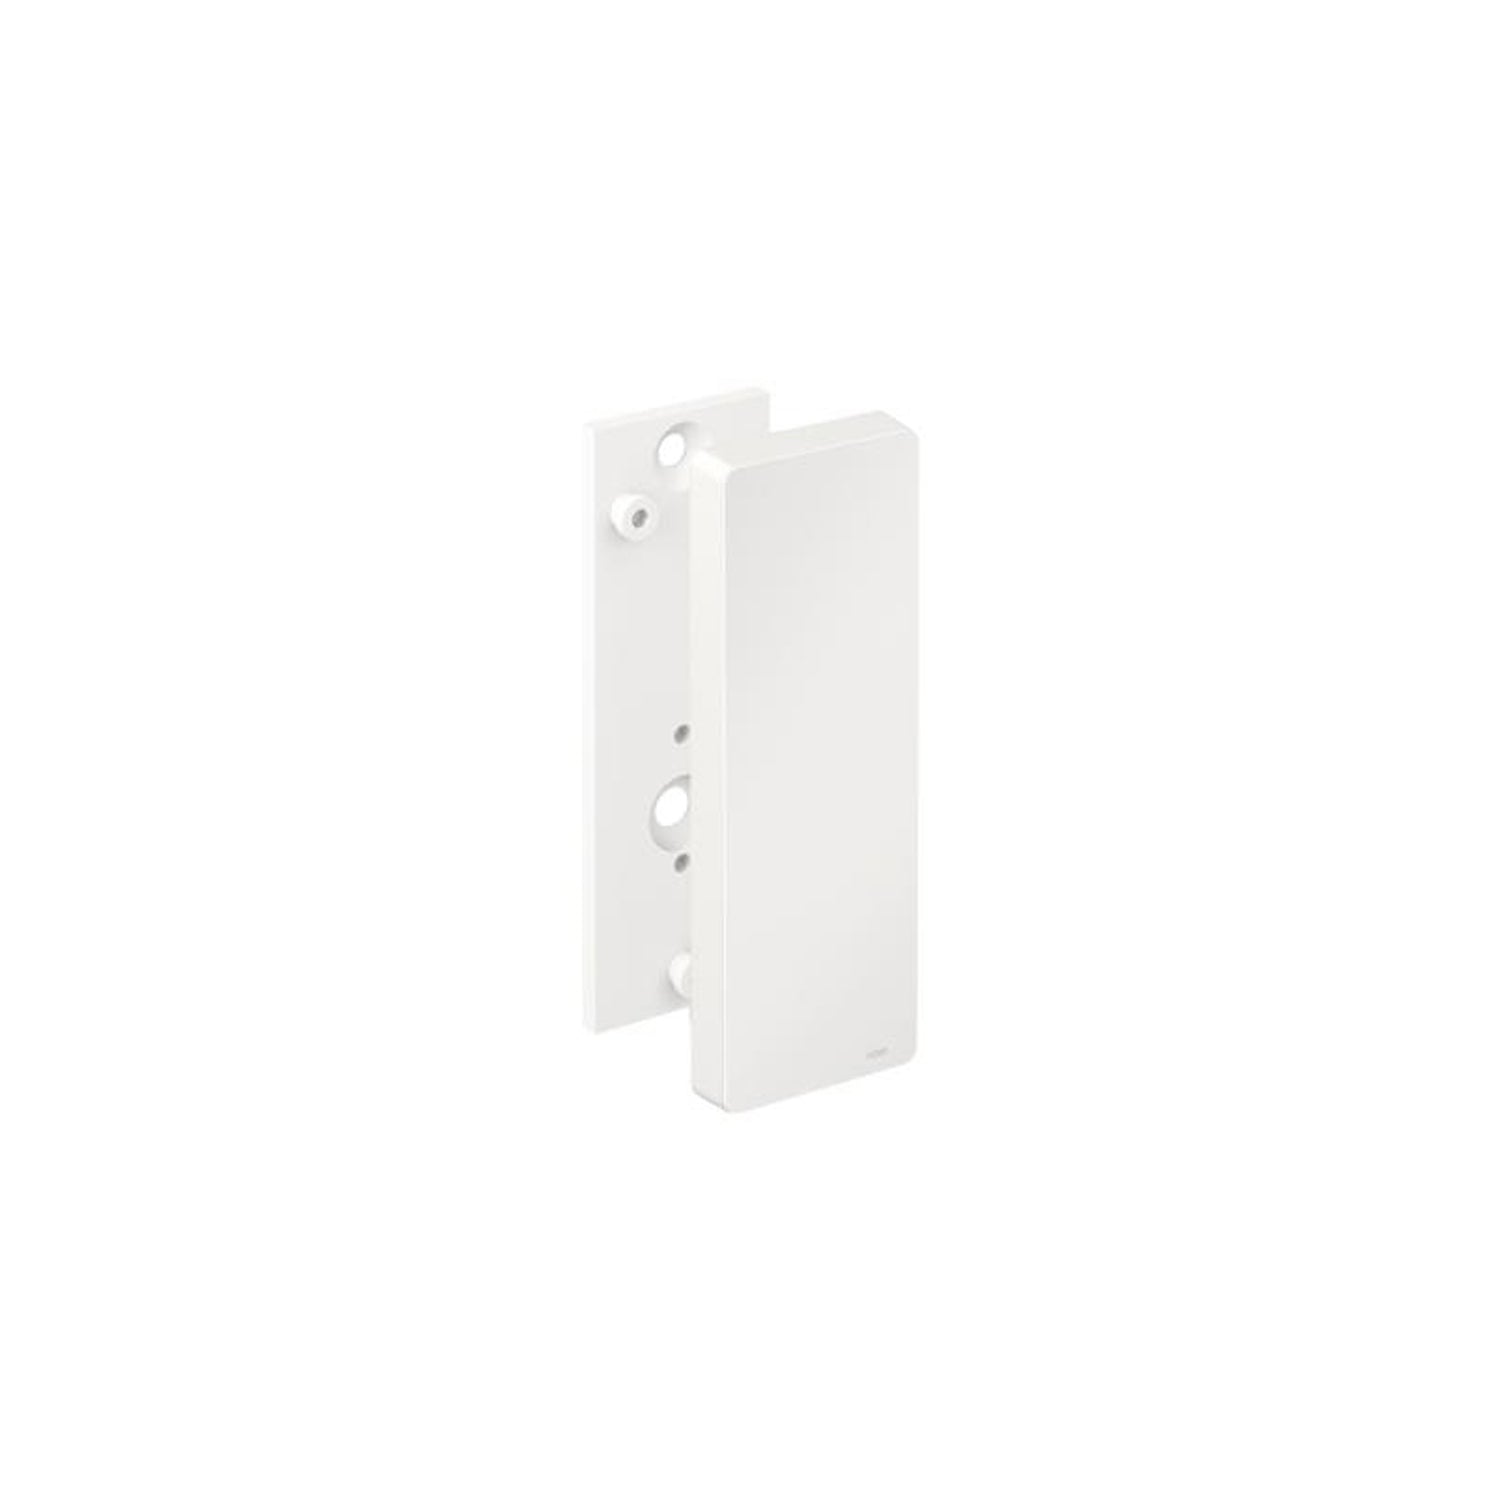 Freestyle Removable Hinged Grab Rail Mounting Plate and Cover with a white finish on a white background